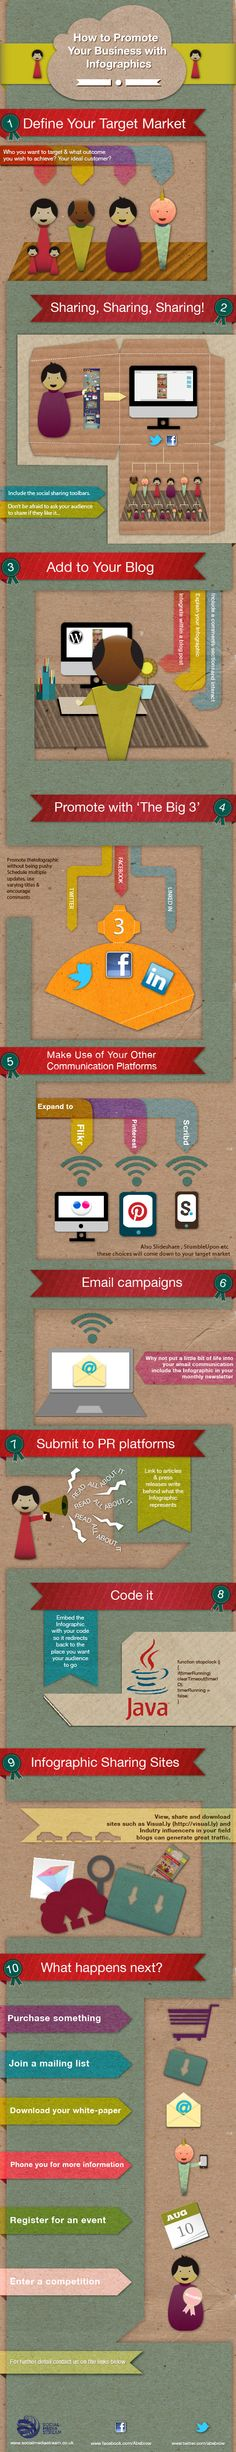 How To Promote Your #Business With #Infographics  http://www.digitalinformationworld.com/